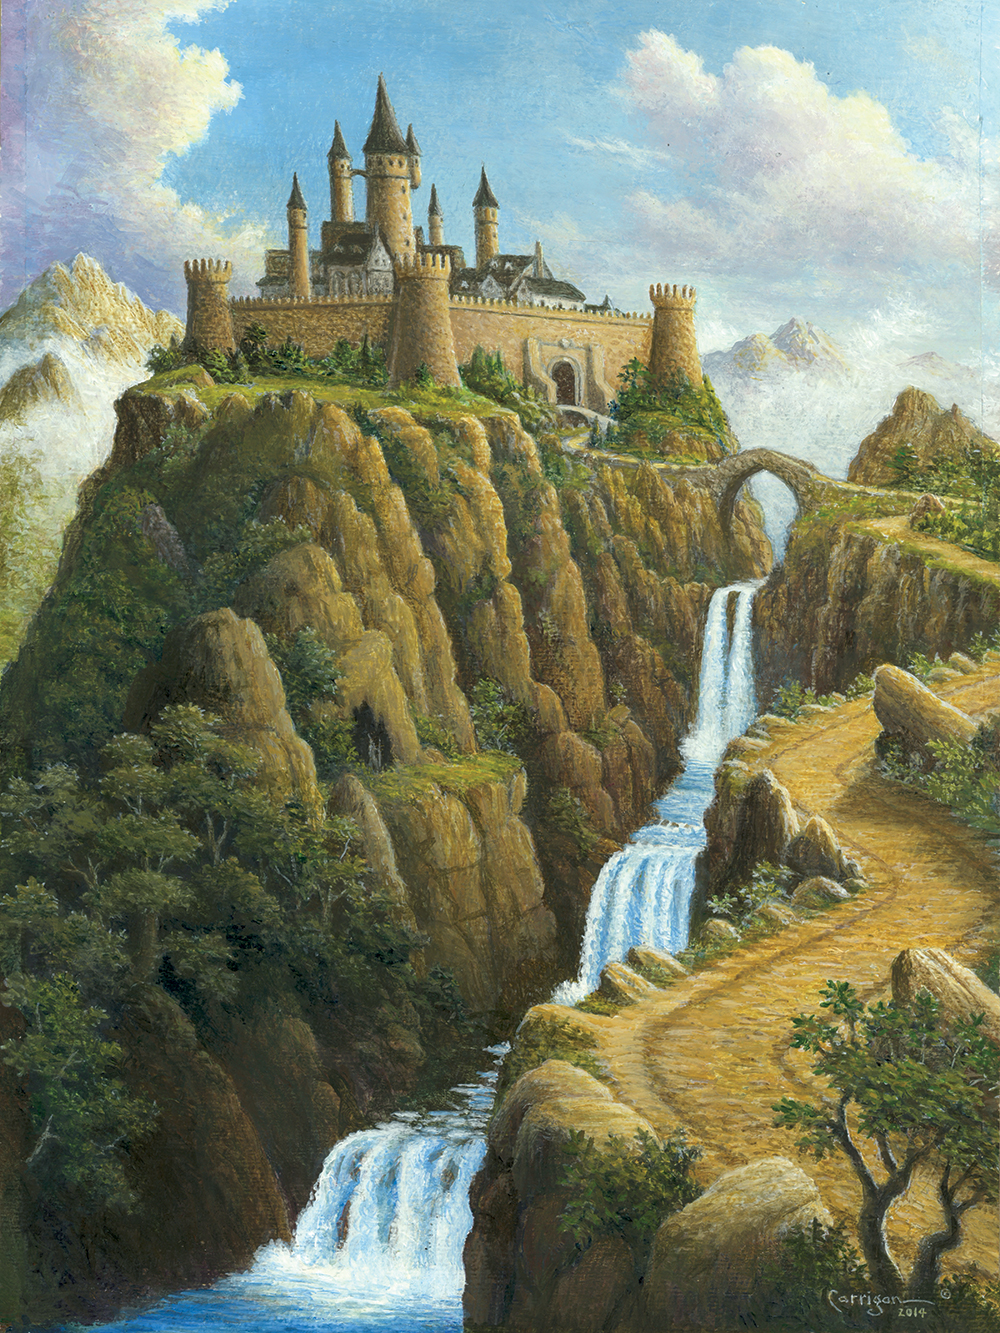 ImaginaryLandscapeWithCastle.jpg